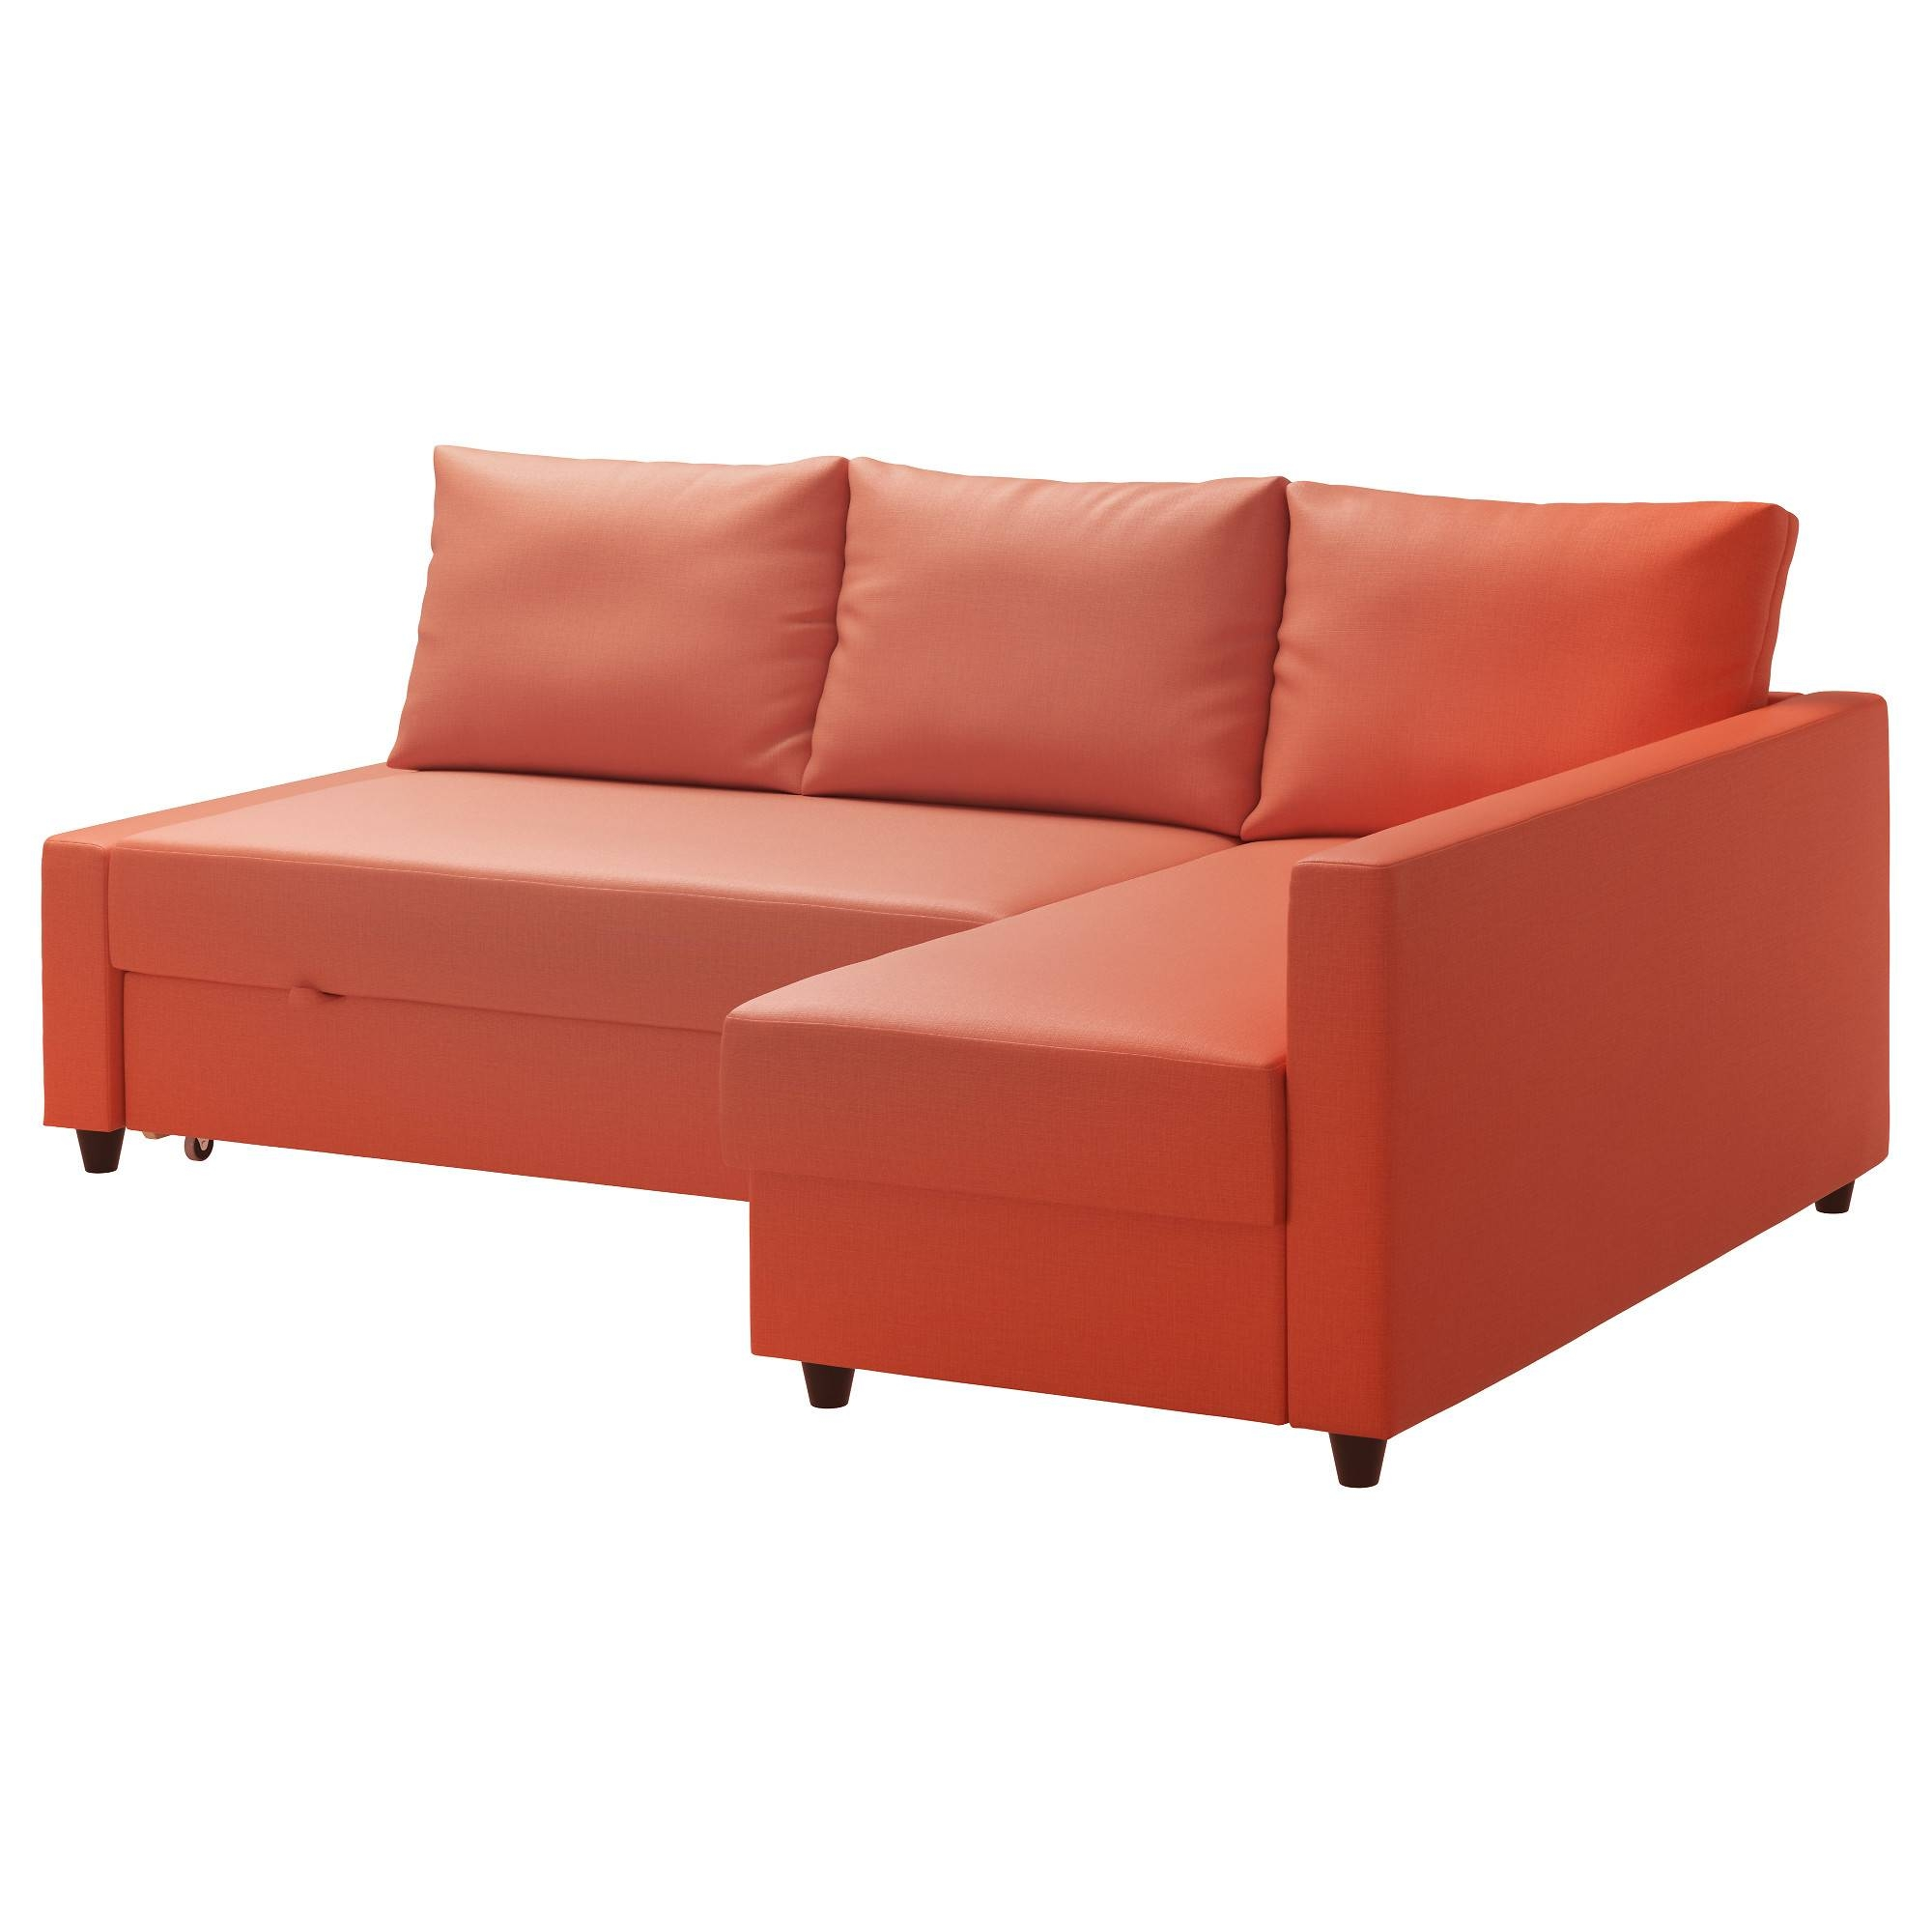 Friheten Corner Sofa-Bed With Storage Skiftebo Dark Orange - Ikea in Orange Ikea Sofas (Image 9 of 30)